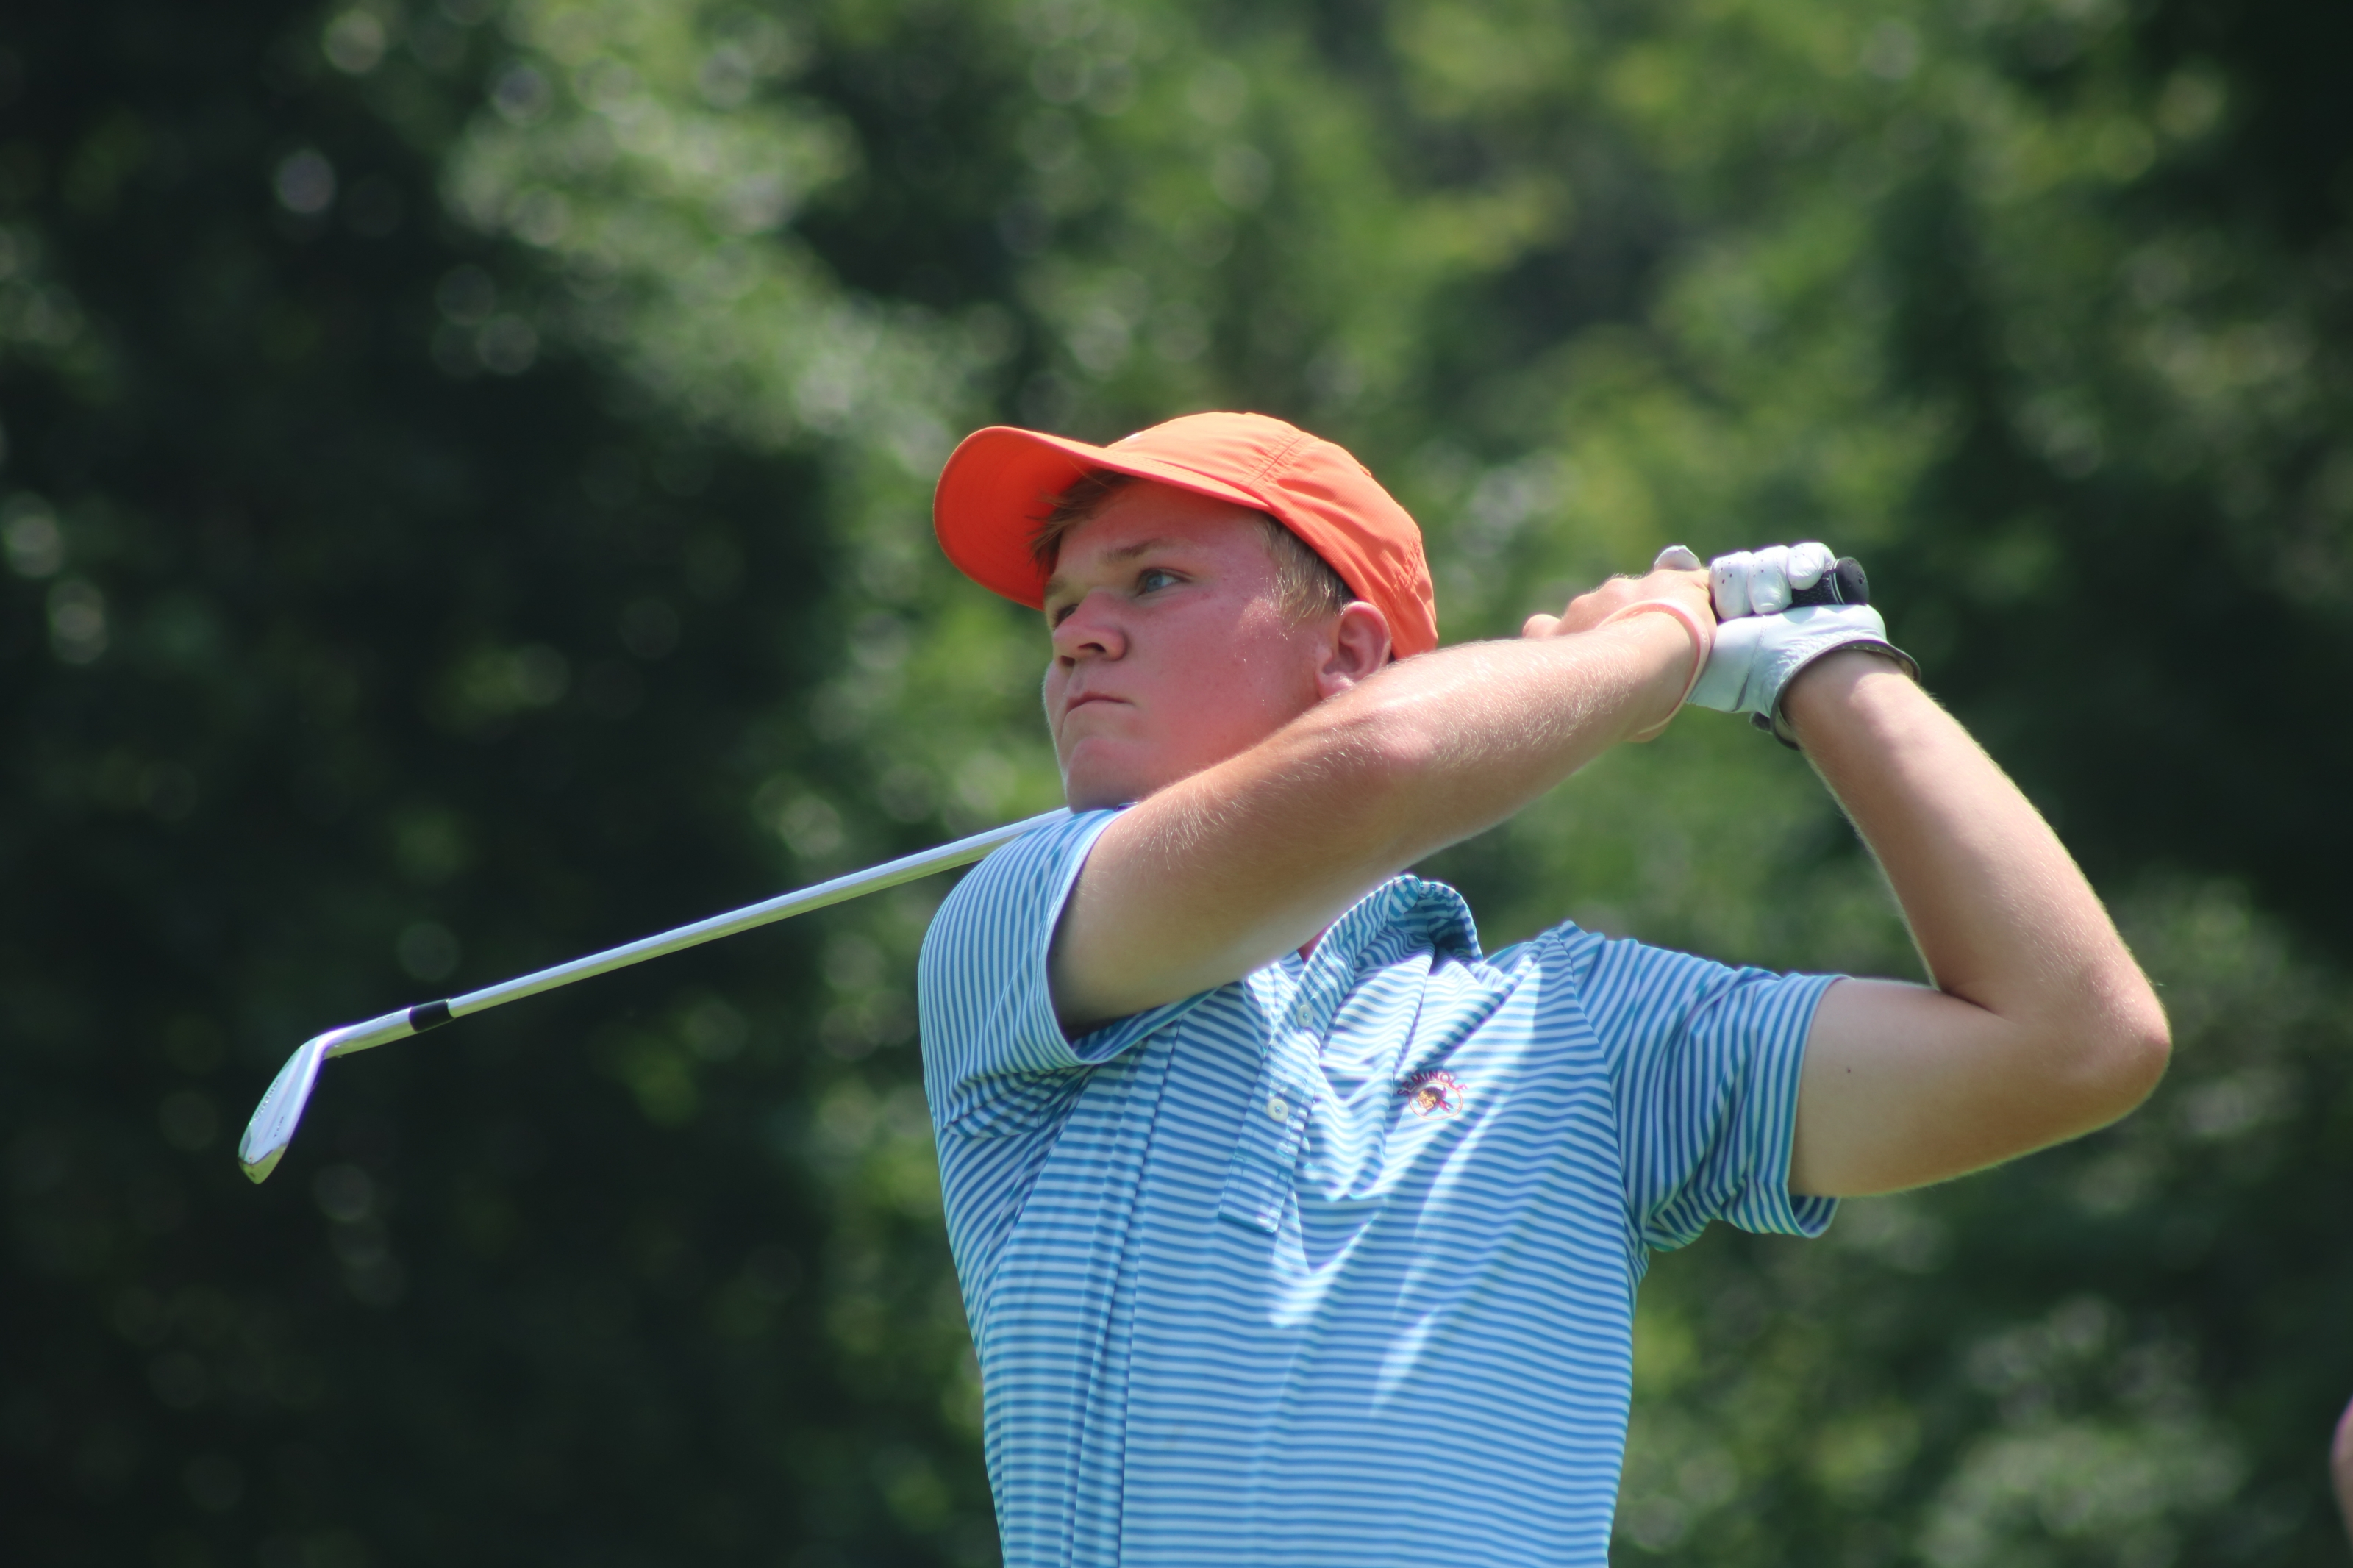 Nicholas Hofman wins Stroke and Match play at Boys State Junior Championship